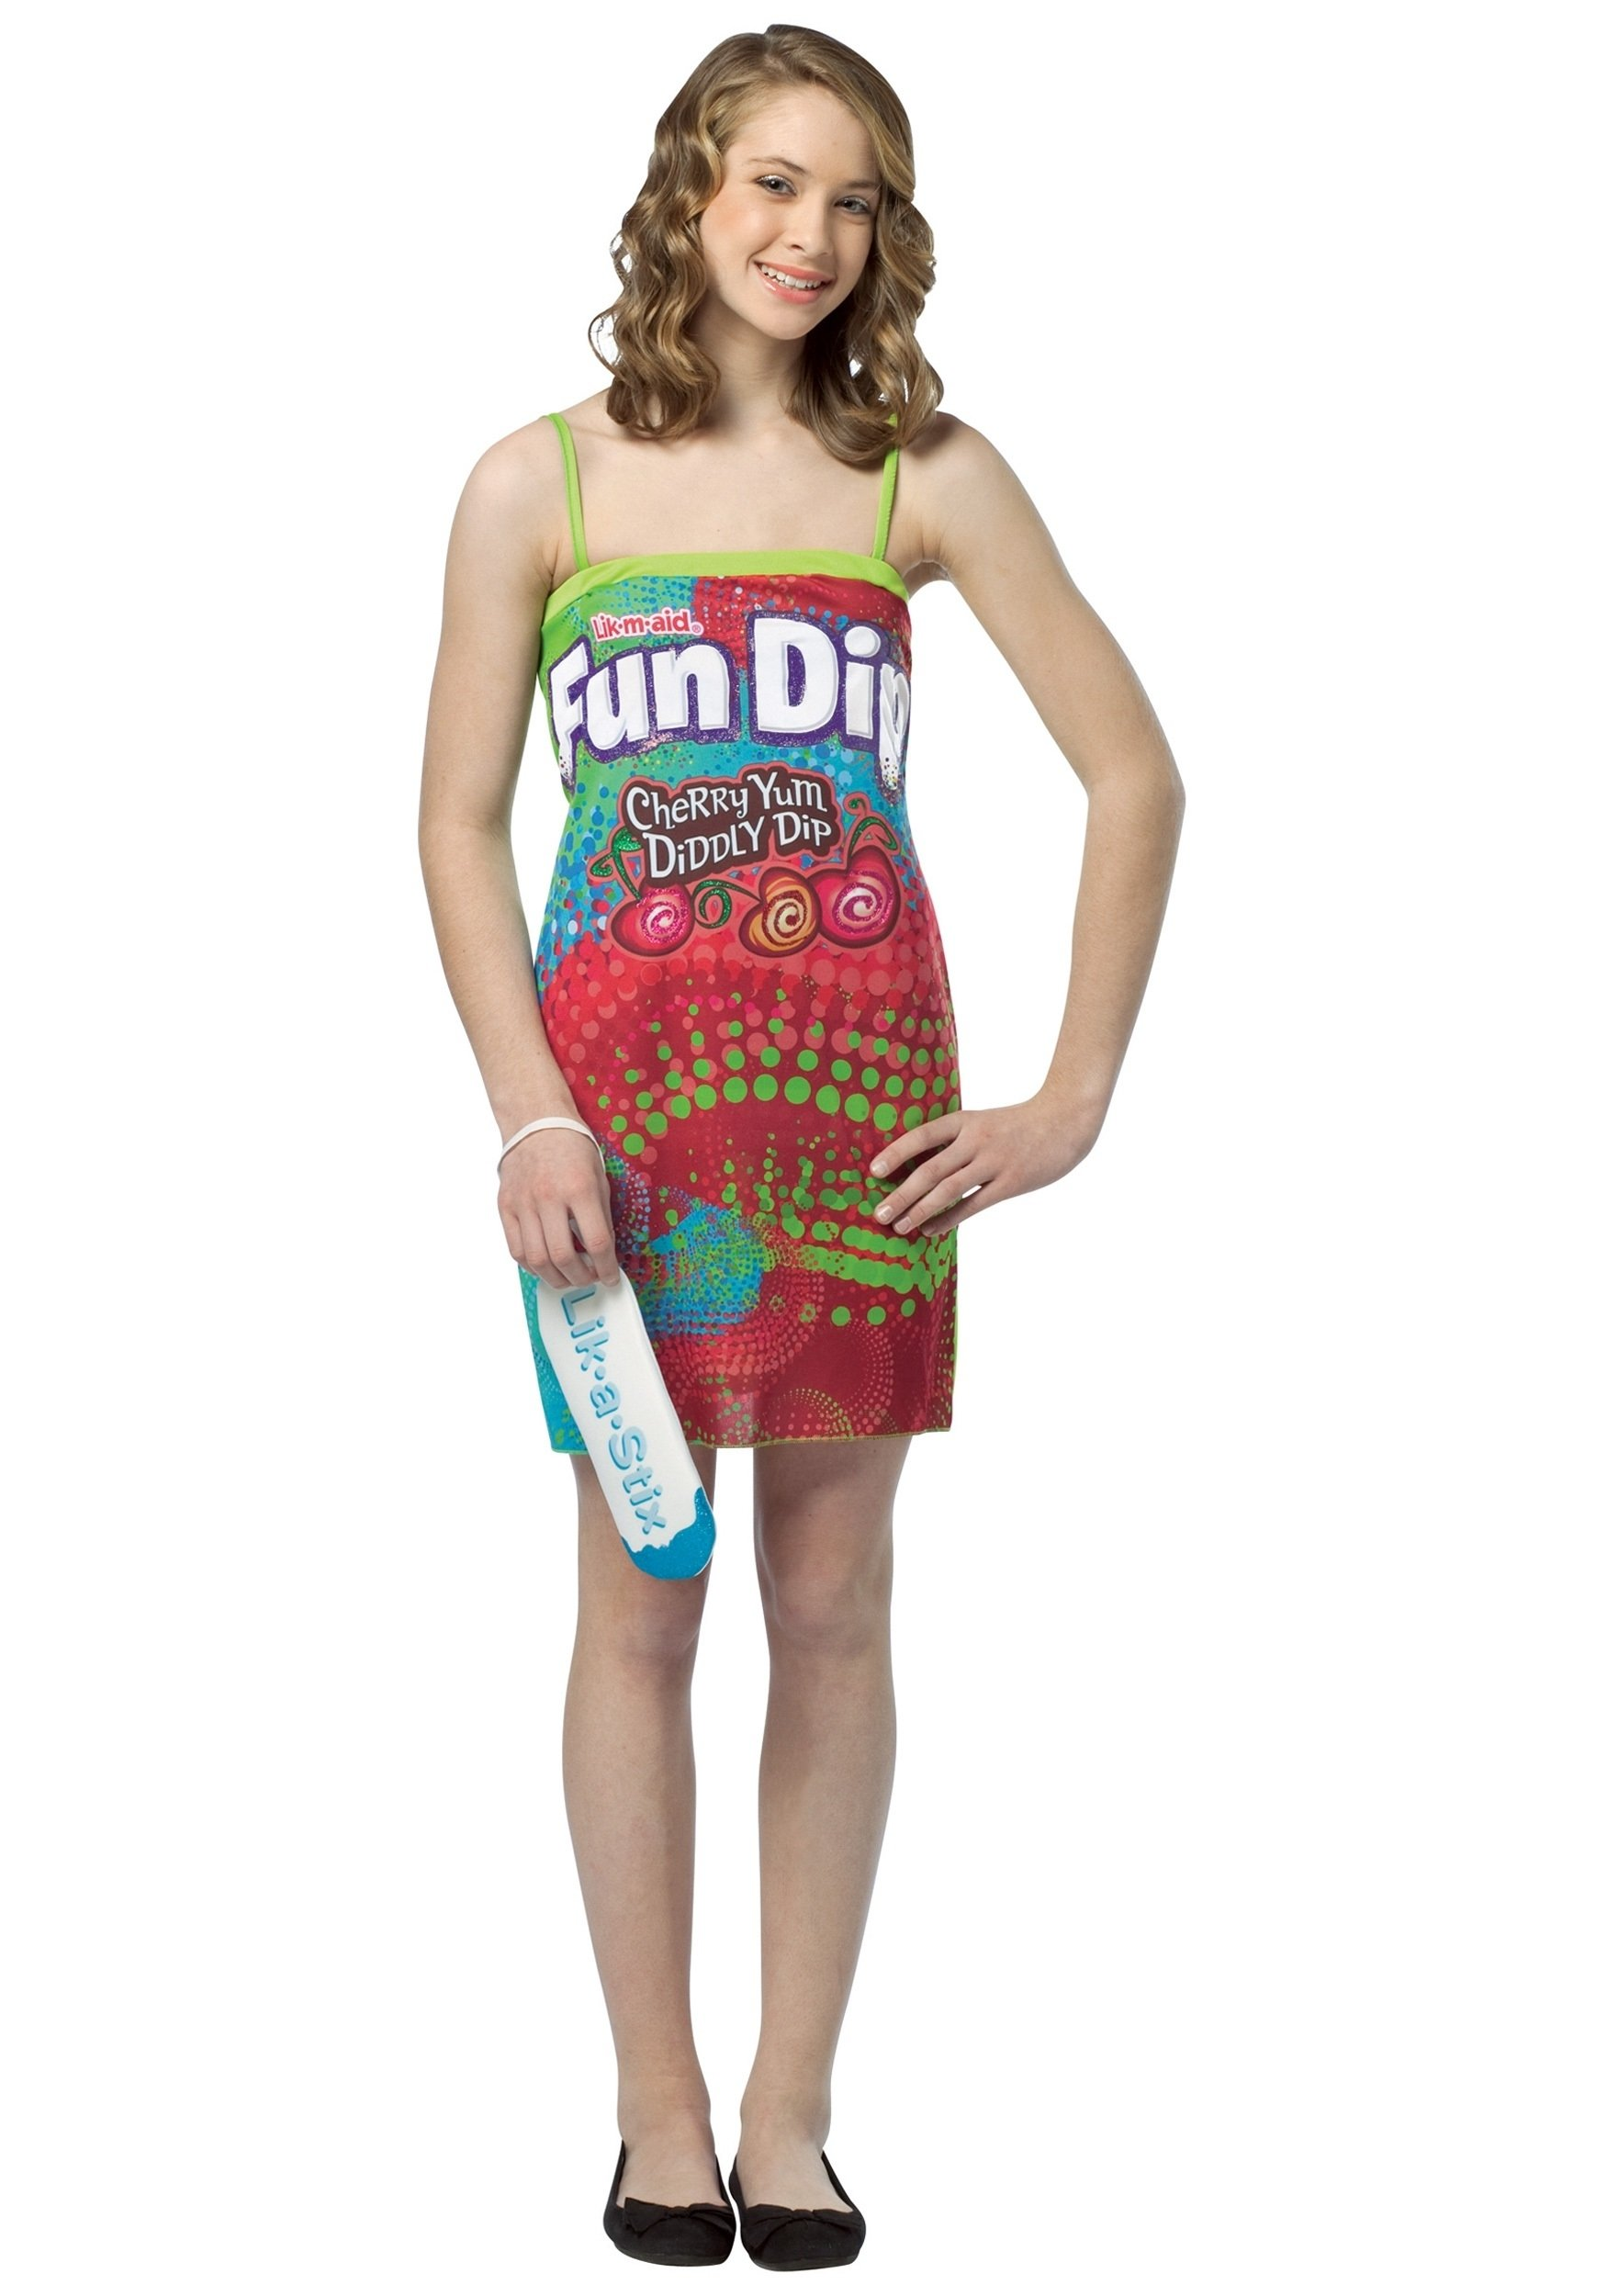 10 Gorgeous Funny Girl Halloween Costume Ideas teen fun dip dress halloween pinterest teen fun fun dip and 9 2021